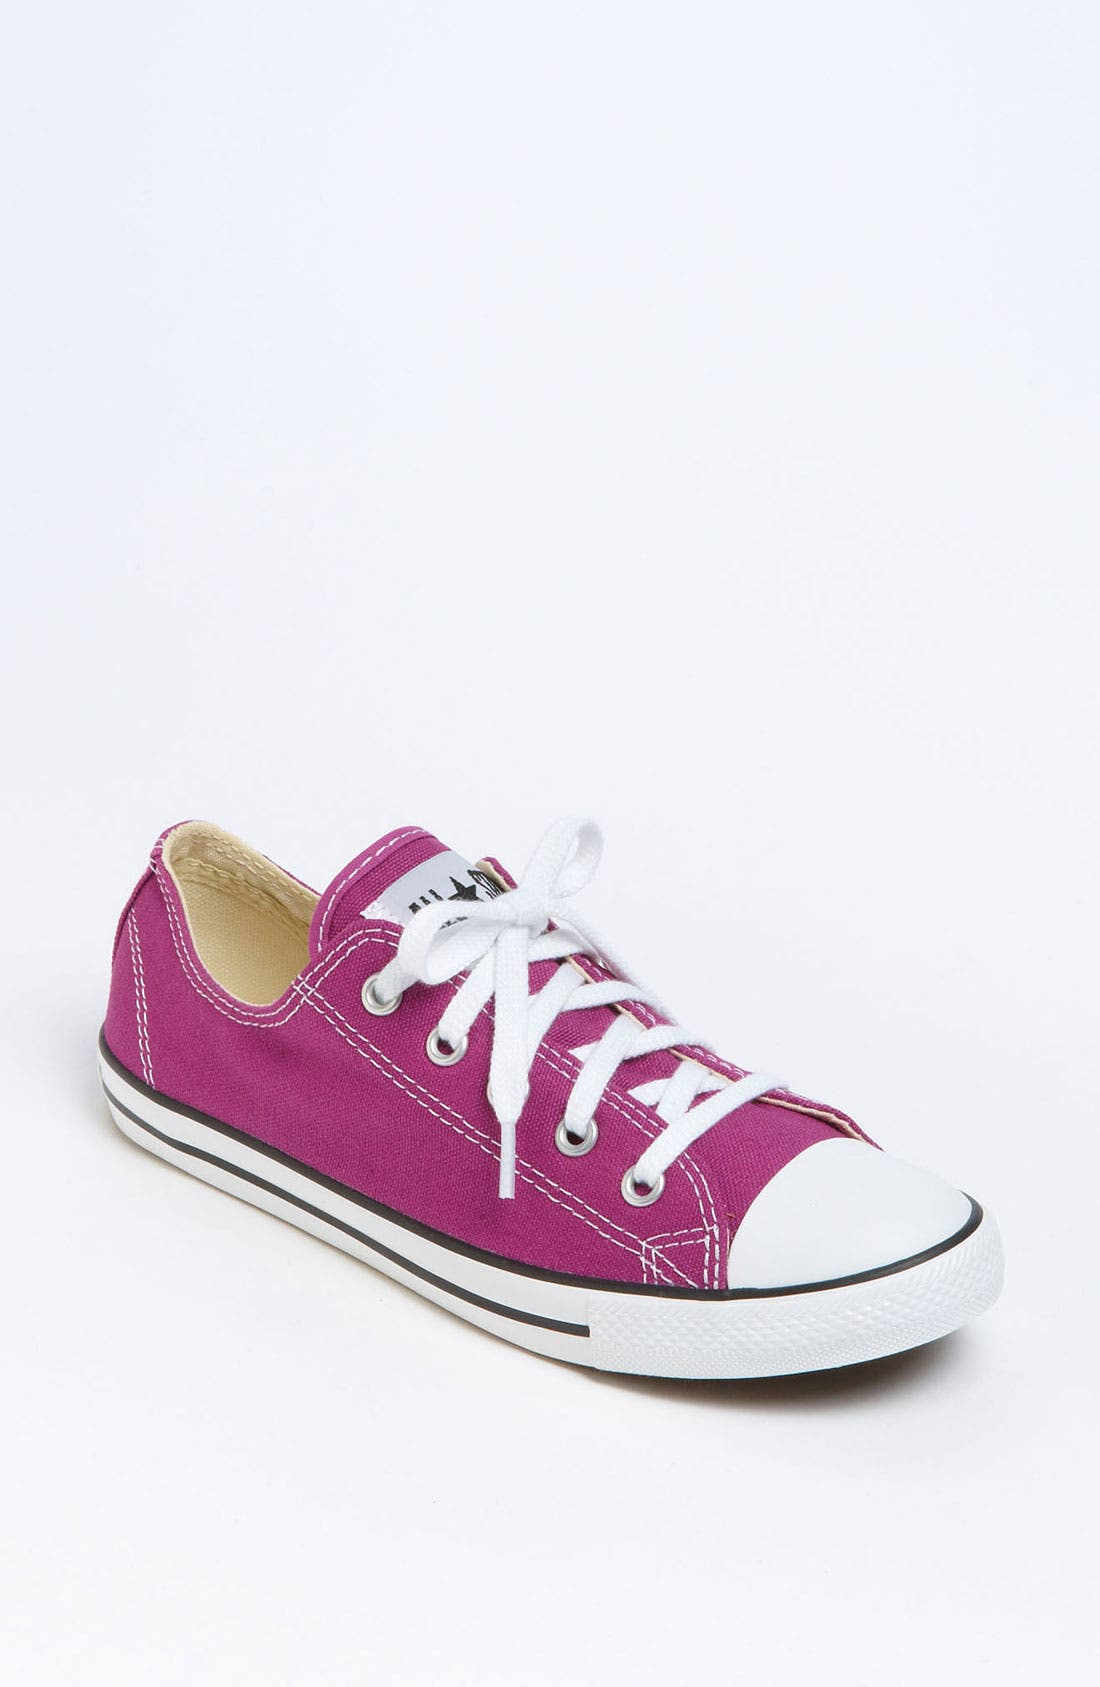 Chuck Taylor<sup>®</sup> 'Dainty' Sneaker,                             Main thumbnail 1, color,                             Deep Orchid